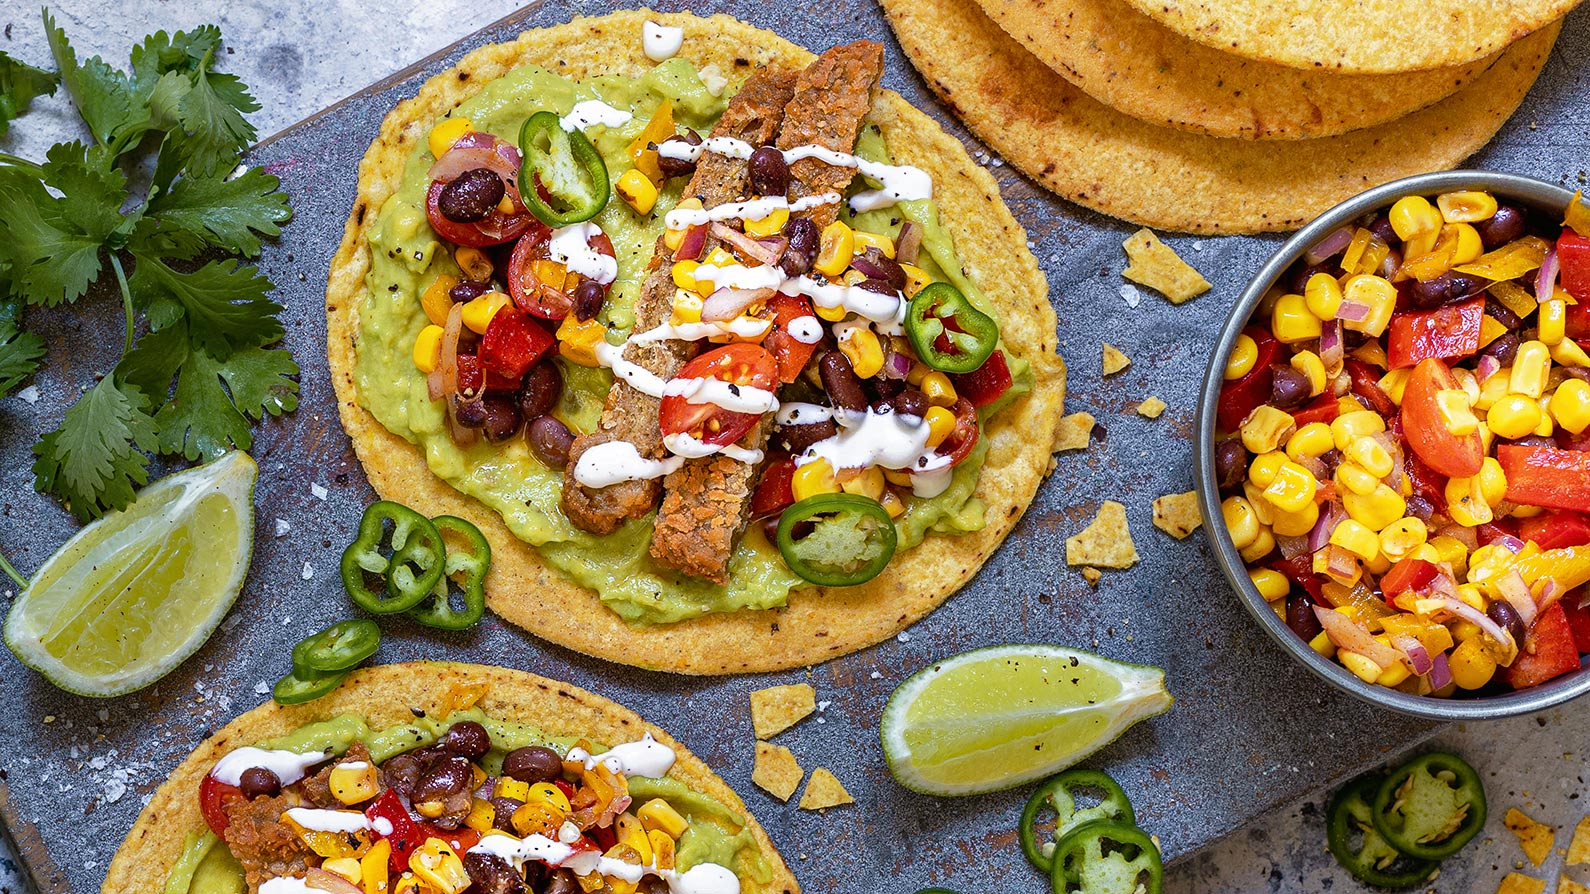 Tostadas get an upgrade with plant-based schnitzel.